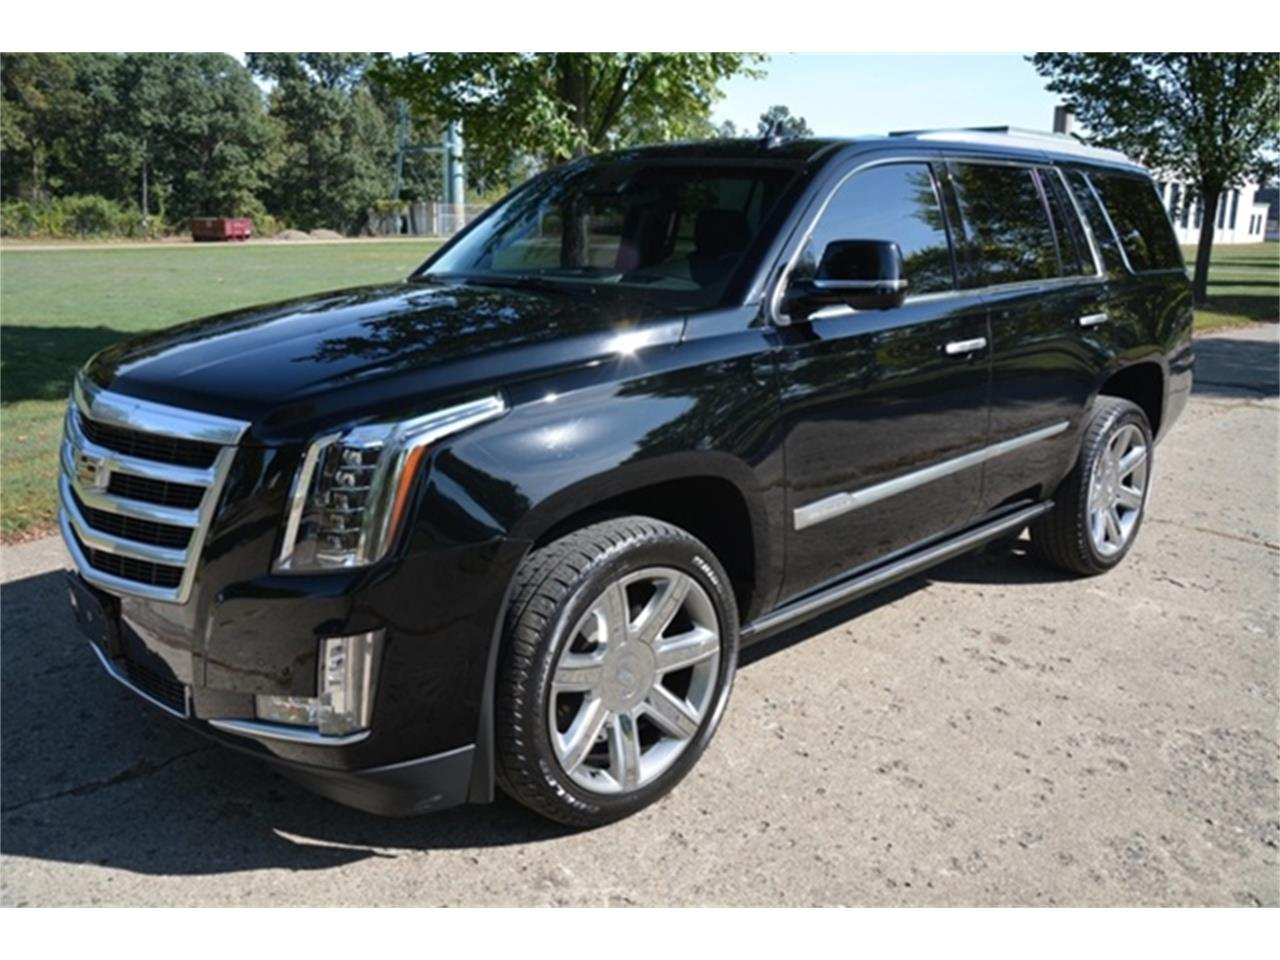 For Sale: 2016 Cadillac Escalade in Shelby Township, Michigan